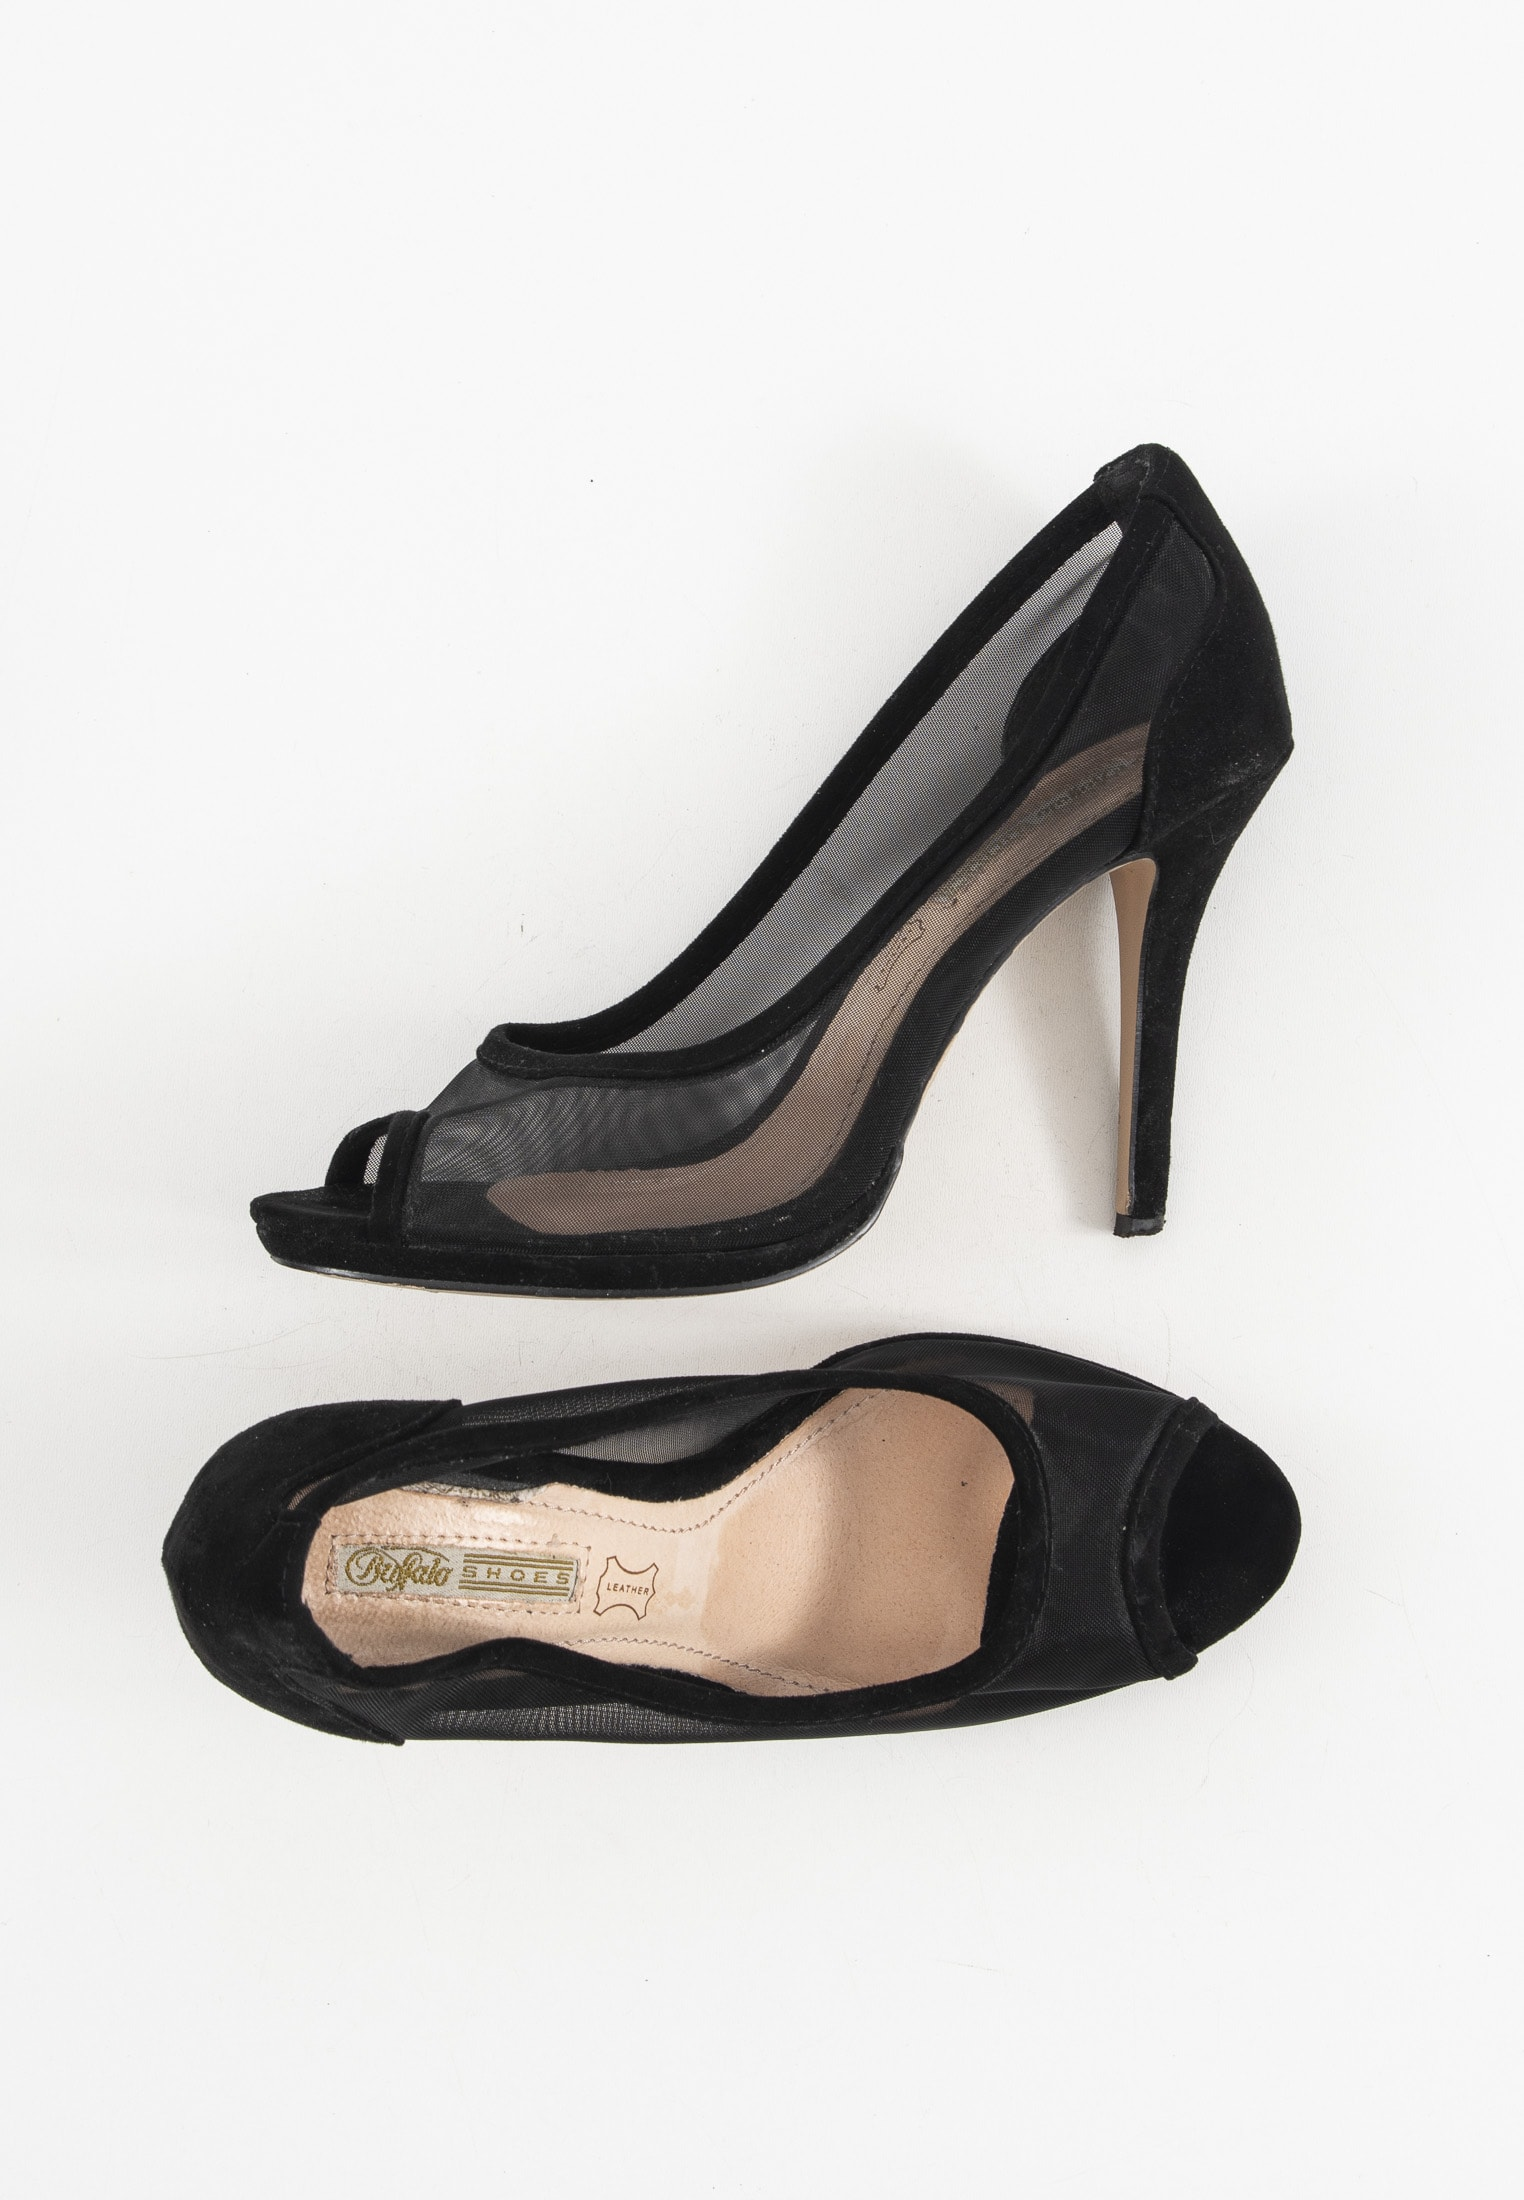 Buffalo pumps, sort, 38